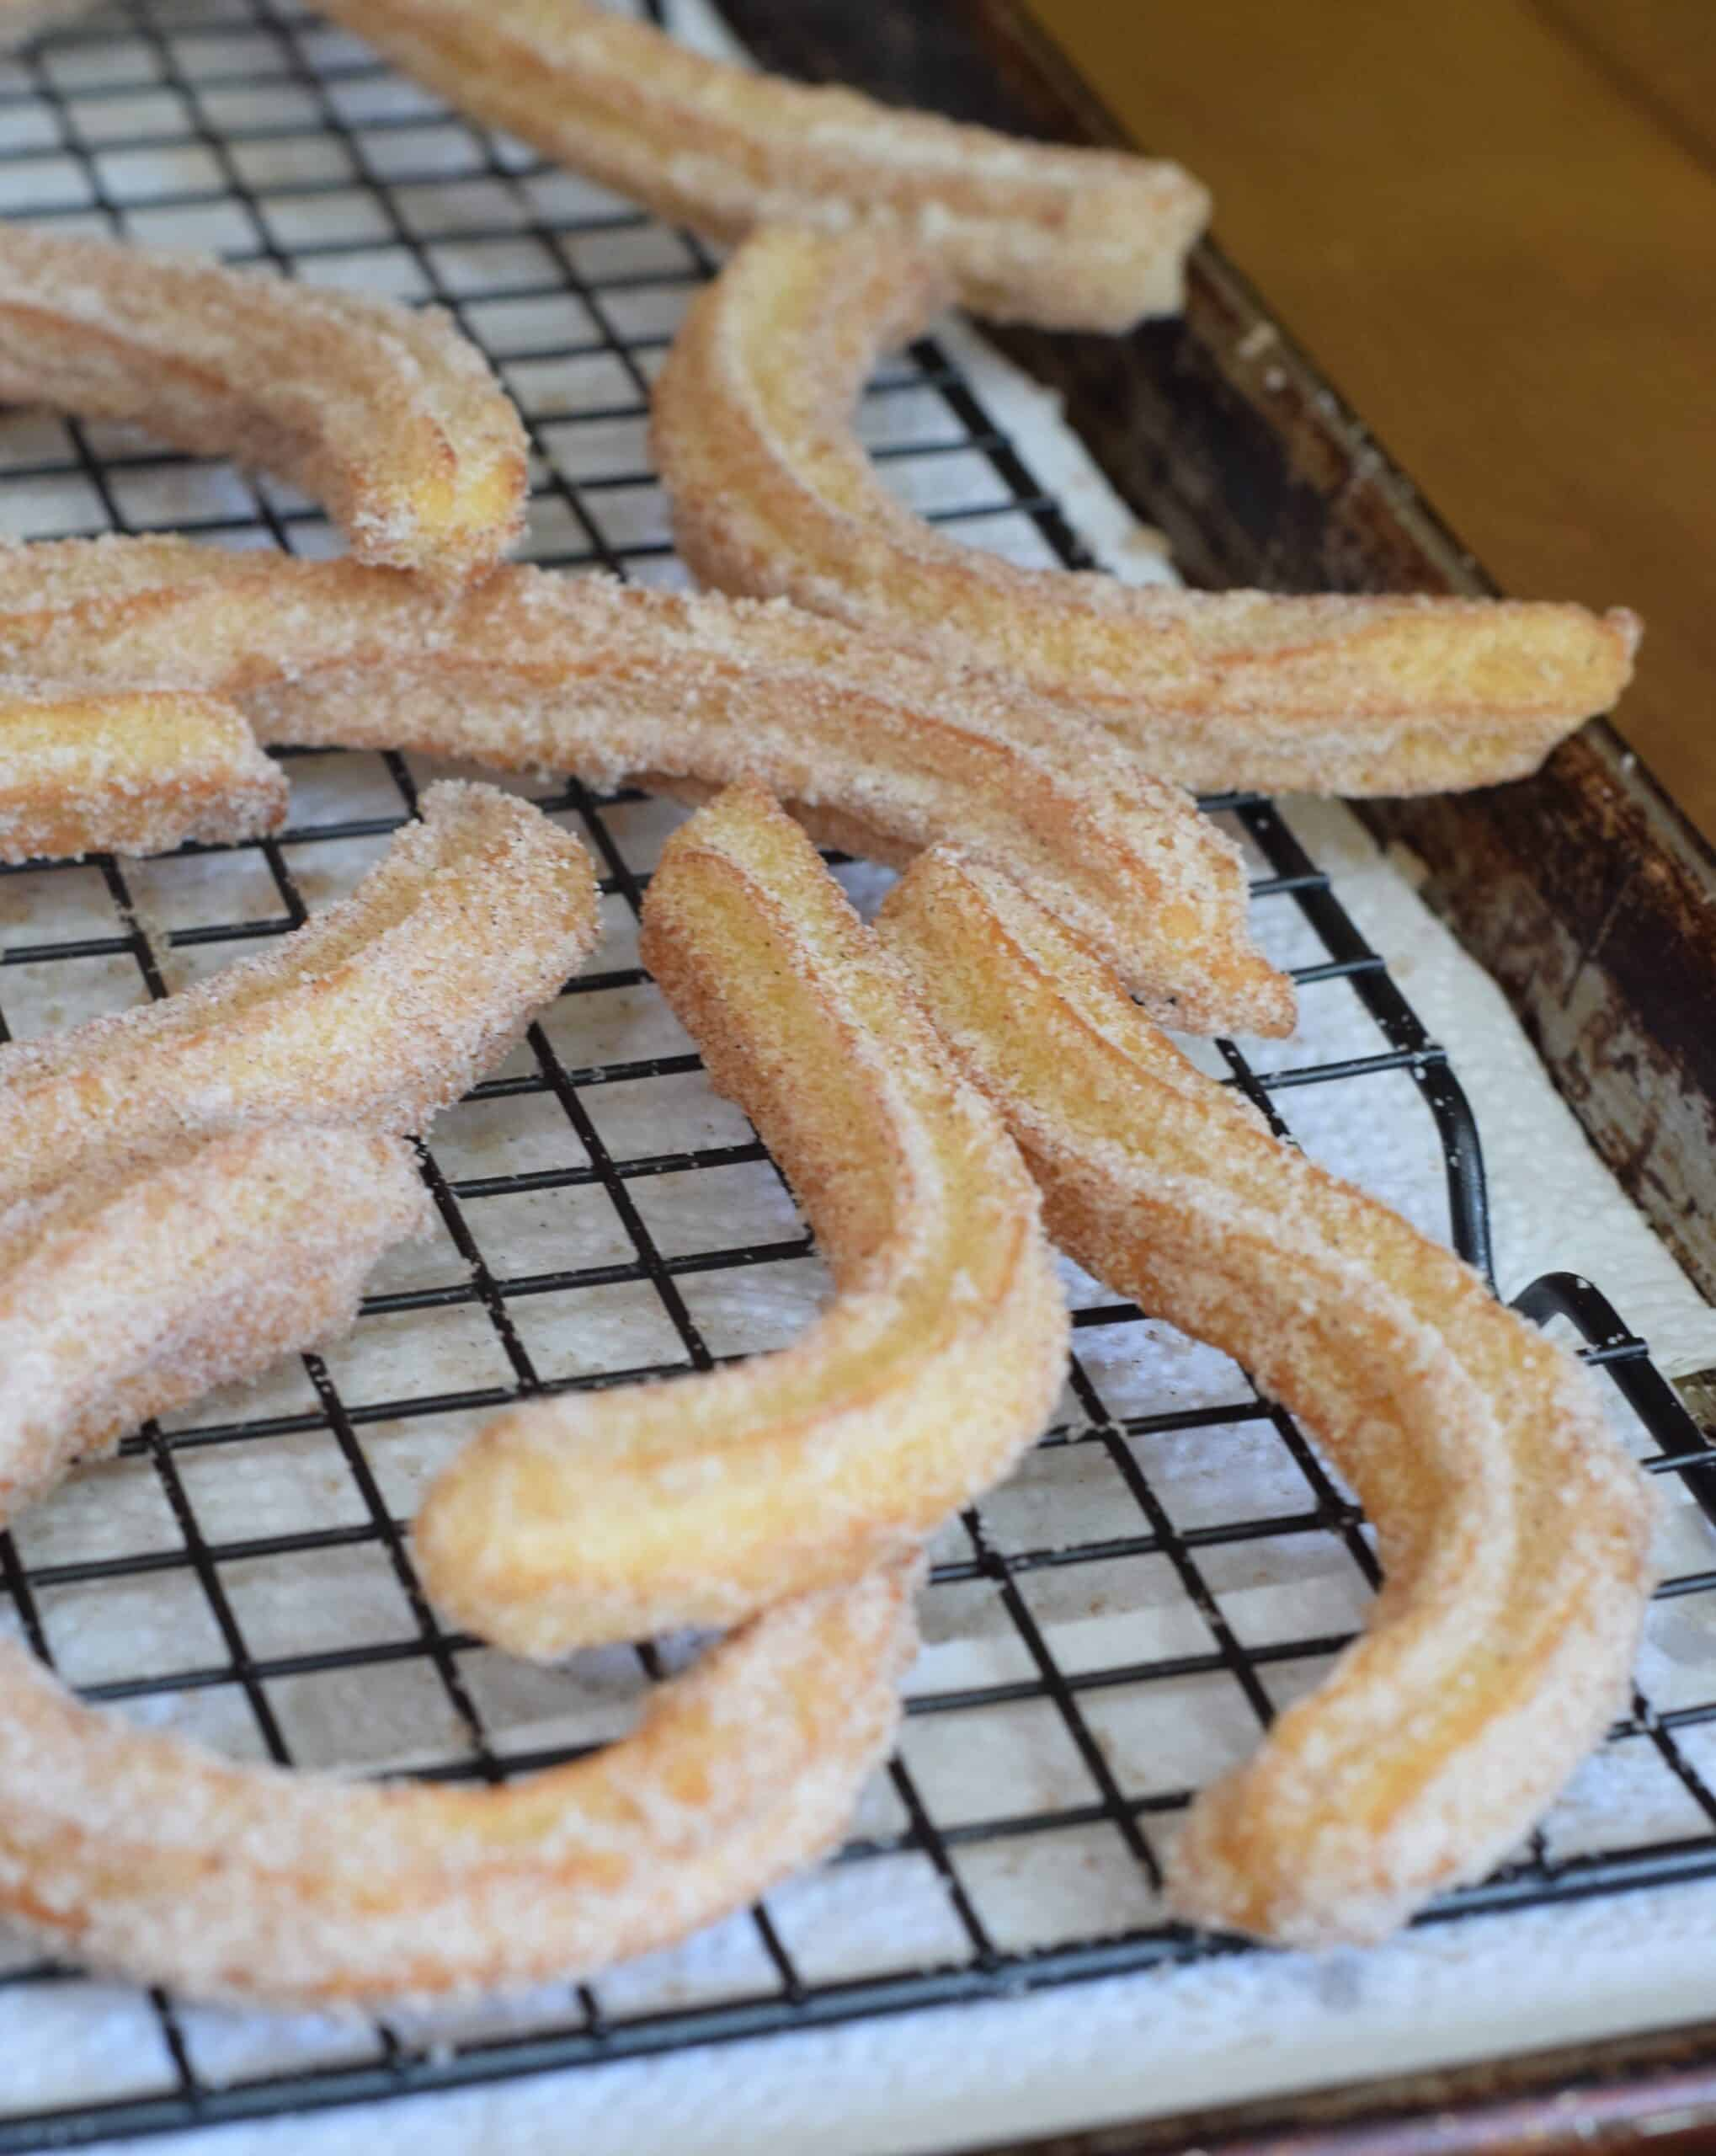 Churros cooking on a wire rack